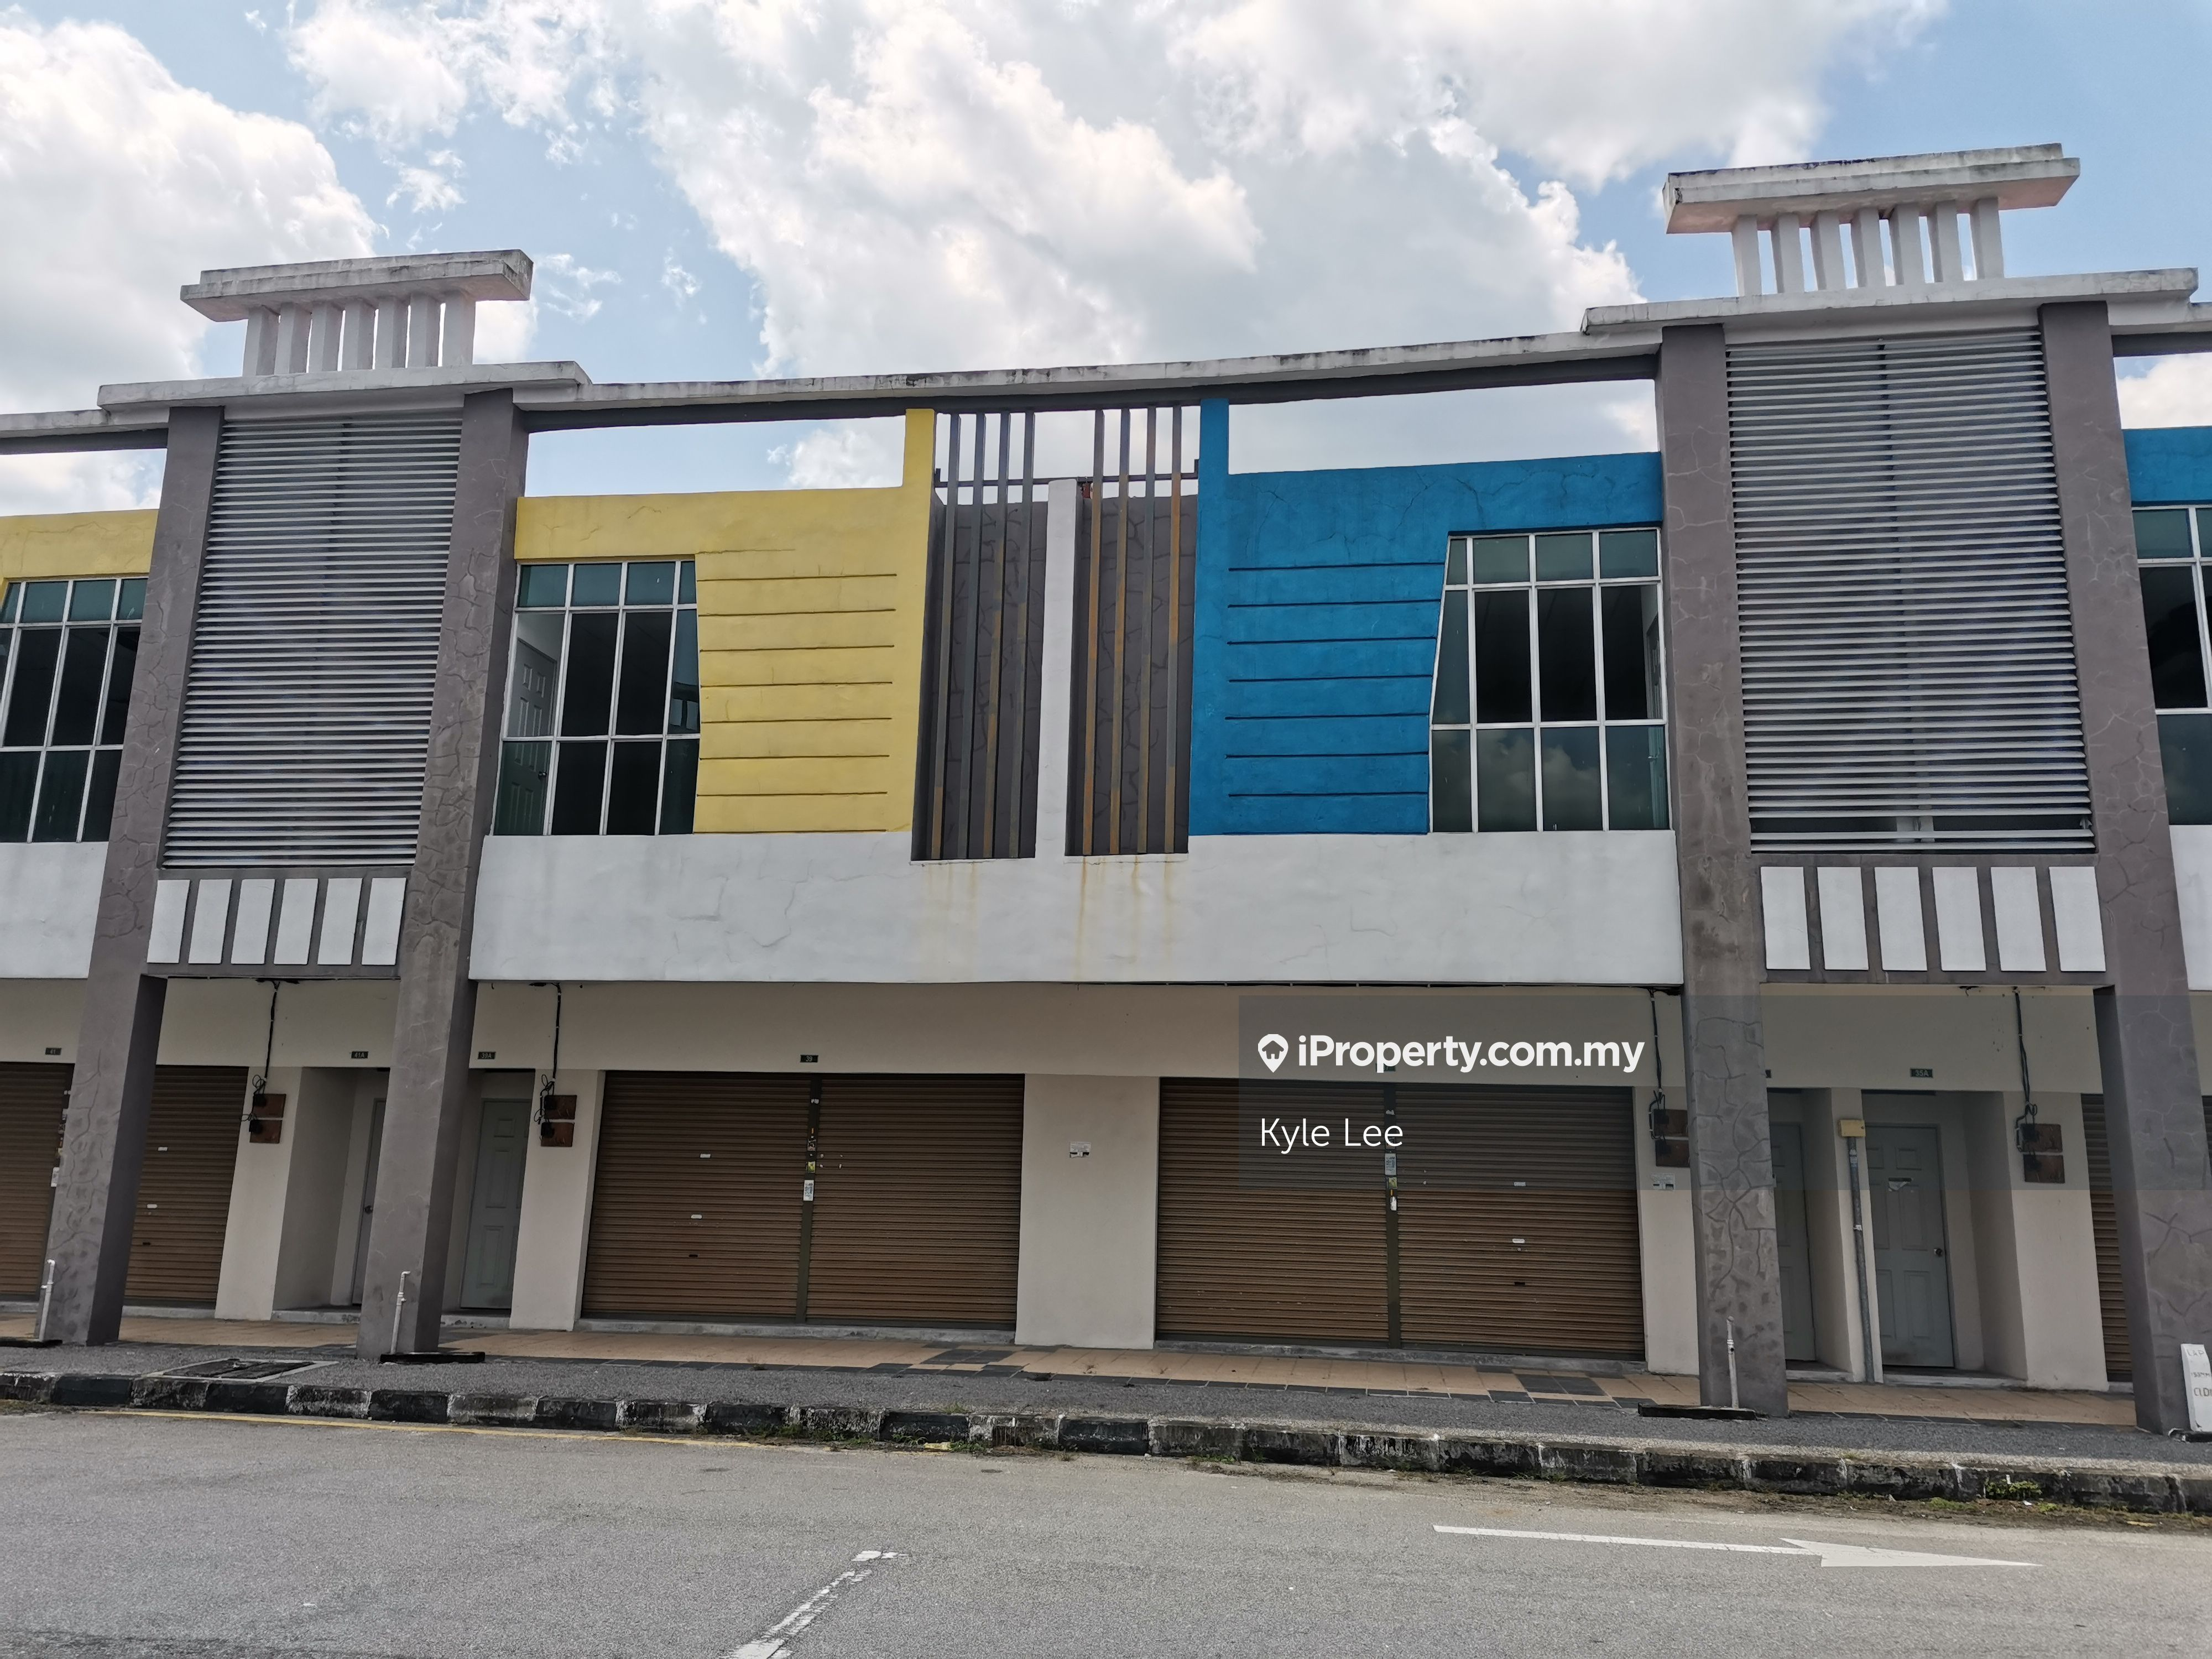 Jelapang DOUBLE STOREY NEW SHOP ~FREE LEGAL FEE AND STAMP DUTY ~BOOKING ONLY RM3000, Jelapang, Ipoh